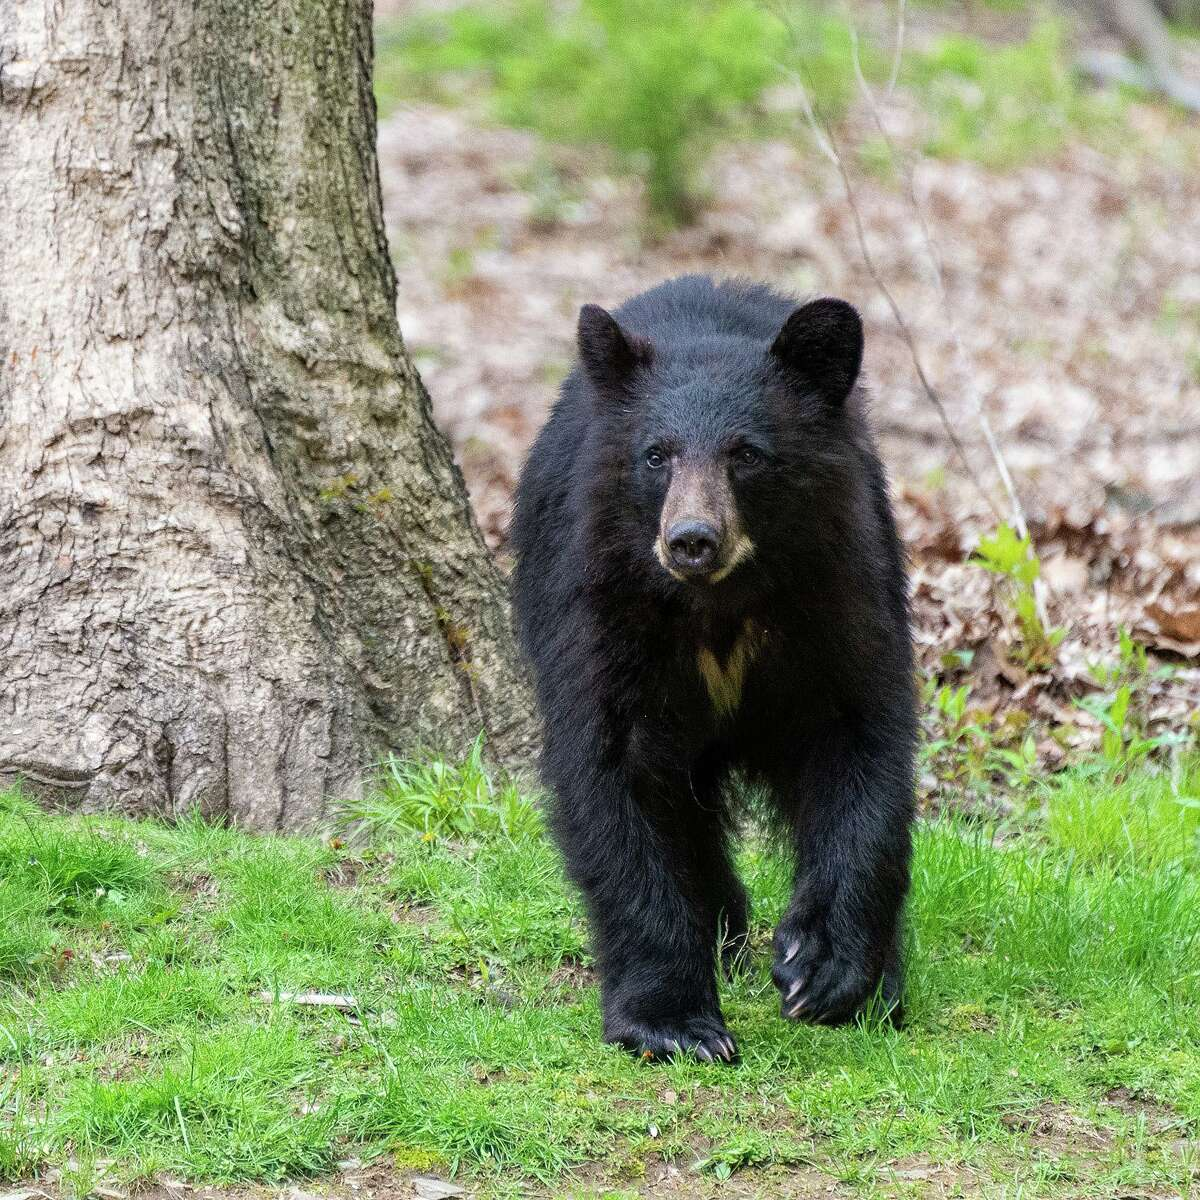 A file photo of a bear in New Milford, Conn., taken back in 2019. In Ansonia on Wednesday, July 7, 2021, police said there was a bear sighting in the area of Rockwood Avenue and Granite Terrace.